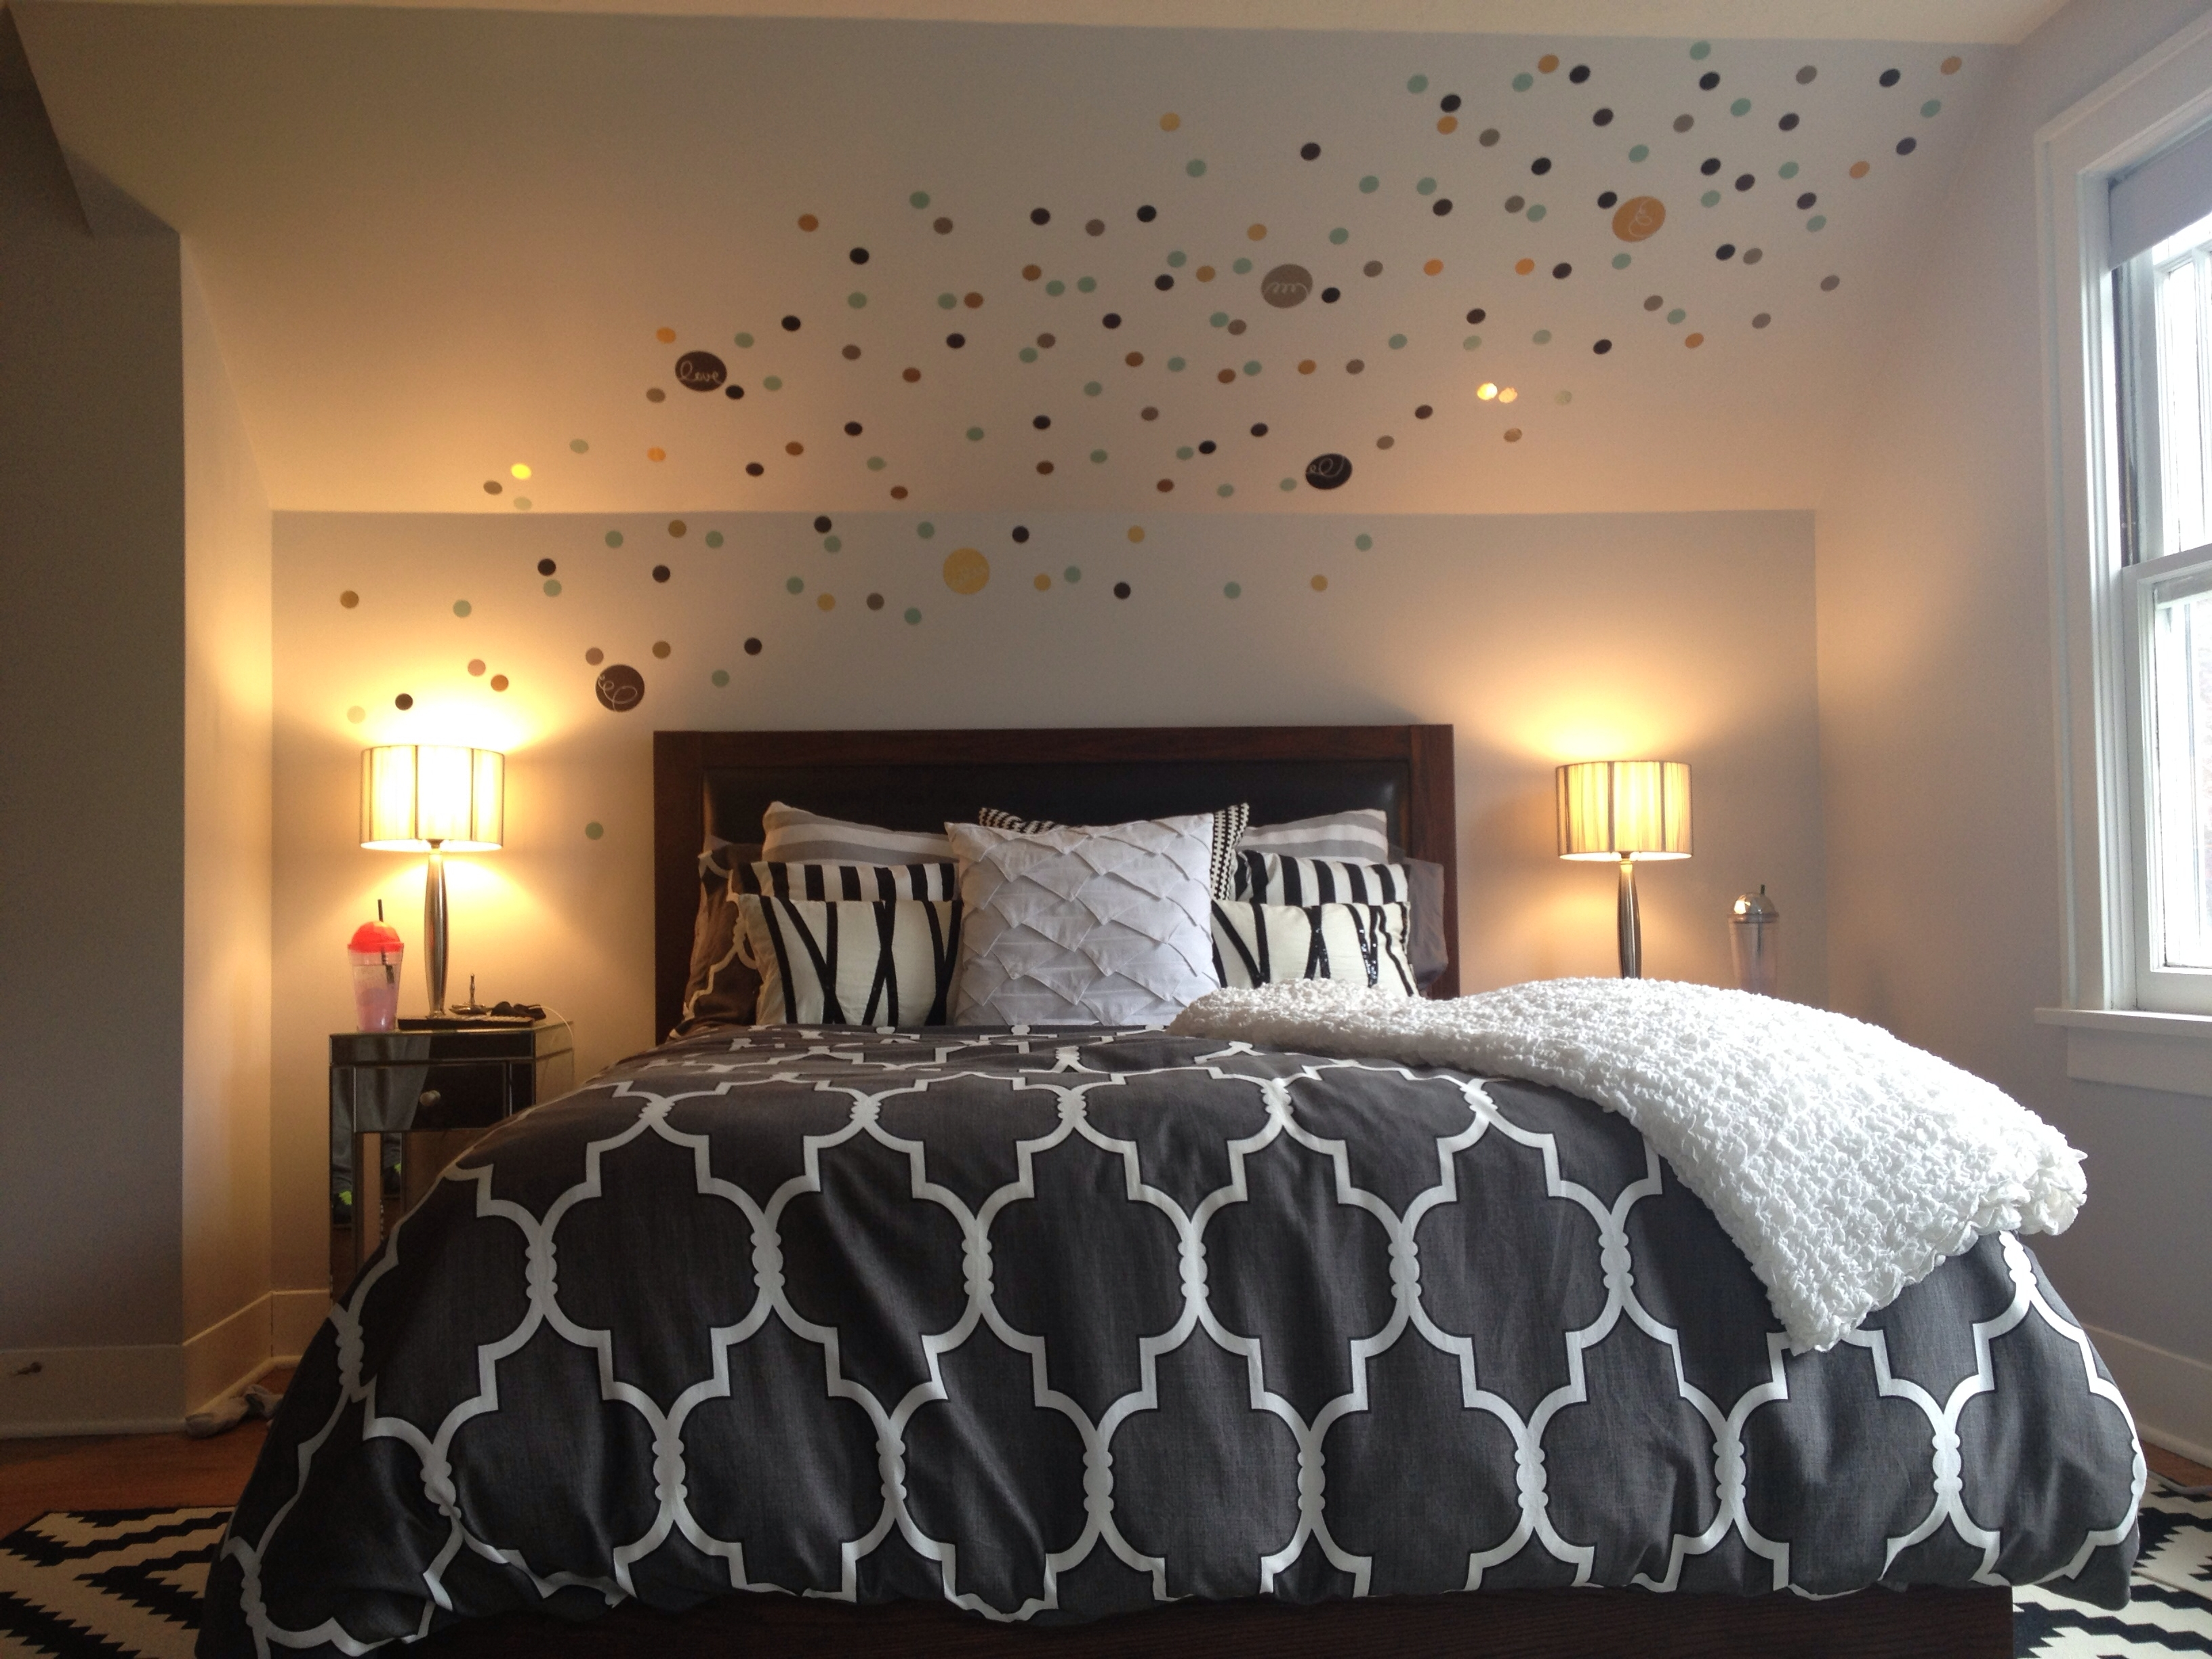 Awesome Master Bedroom Wall Decor Ideas | Bedroom Decor Within Current Wall Accents For Small Bedroom (View 1 of 15)